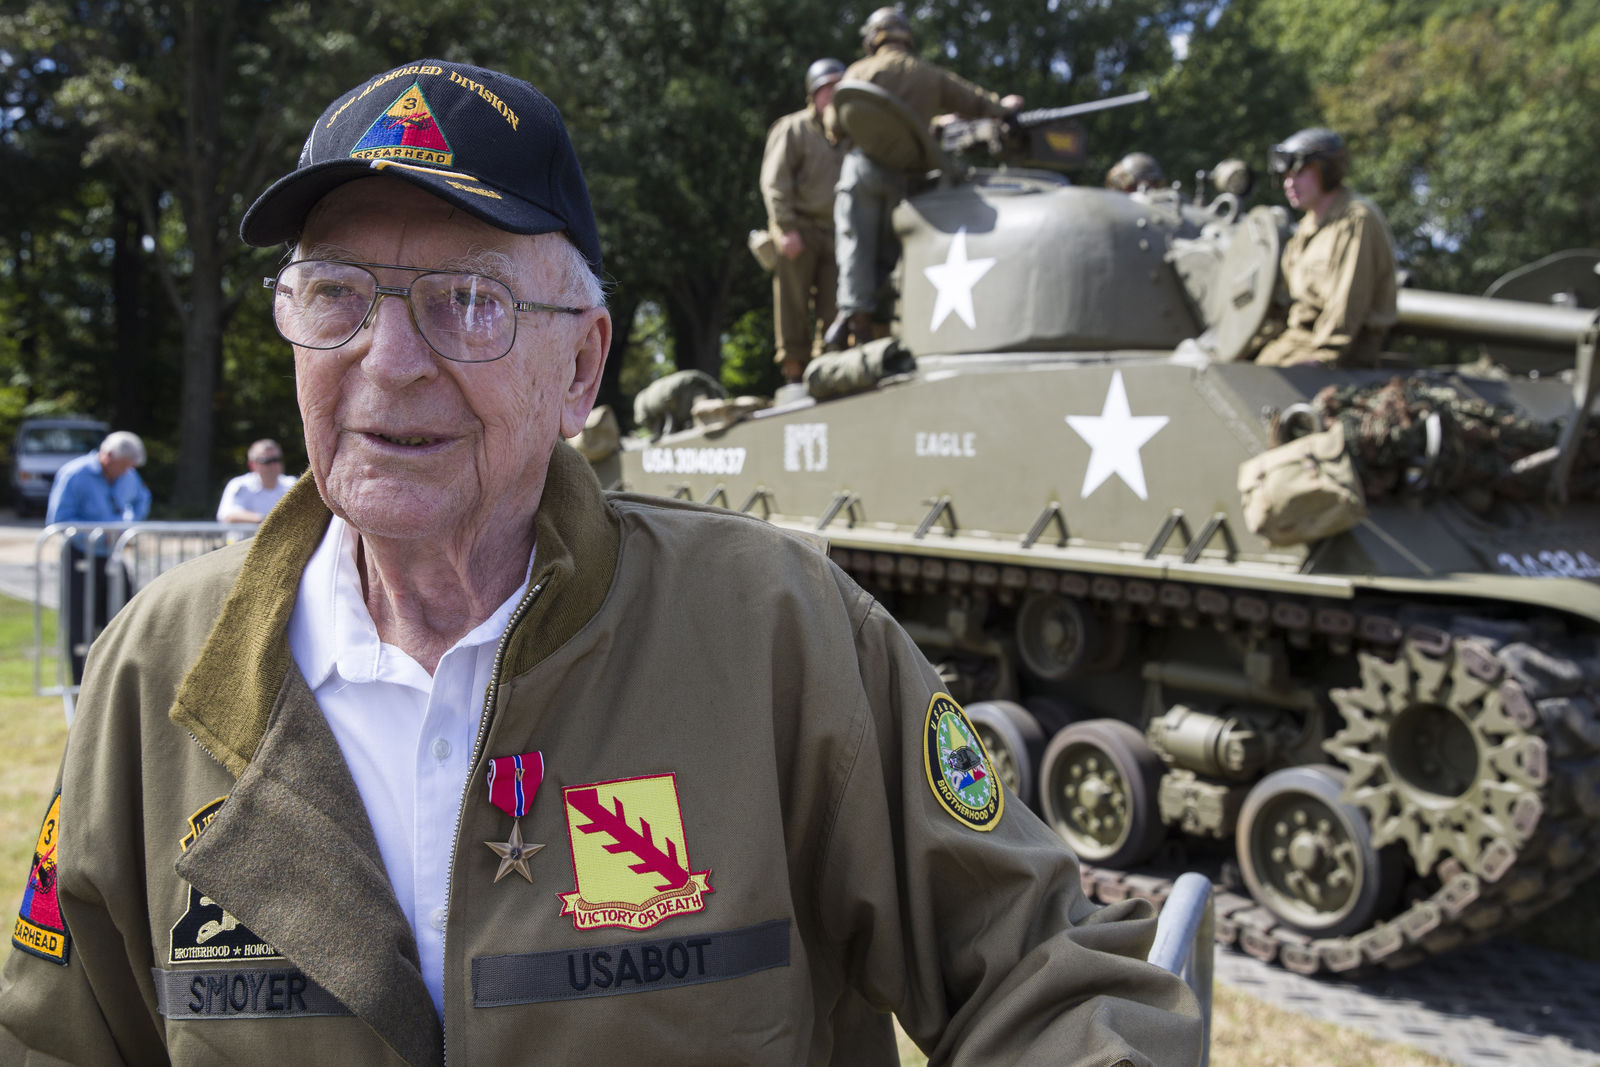 World War II veteran Clarence Smoyer, 96, poses for a picture in front of a Sherman tank after receiving the Bronze Star, near the World War II Memorial, Wednesday, Sept. 18, 2019, in Washington. Smoyer fought with the U.S. Army's 3rd Armored Division, nicknamed the Spearhead Division. In 1945, he defeated a German Panther tank near the cathedral in Cologne, Germany — a dramatic duel filmed by an Army cameraman that was seen all over the world. (AP Photo/Alex Brandon)